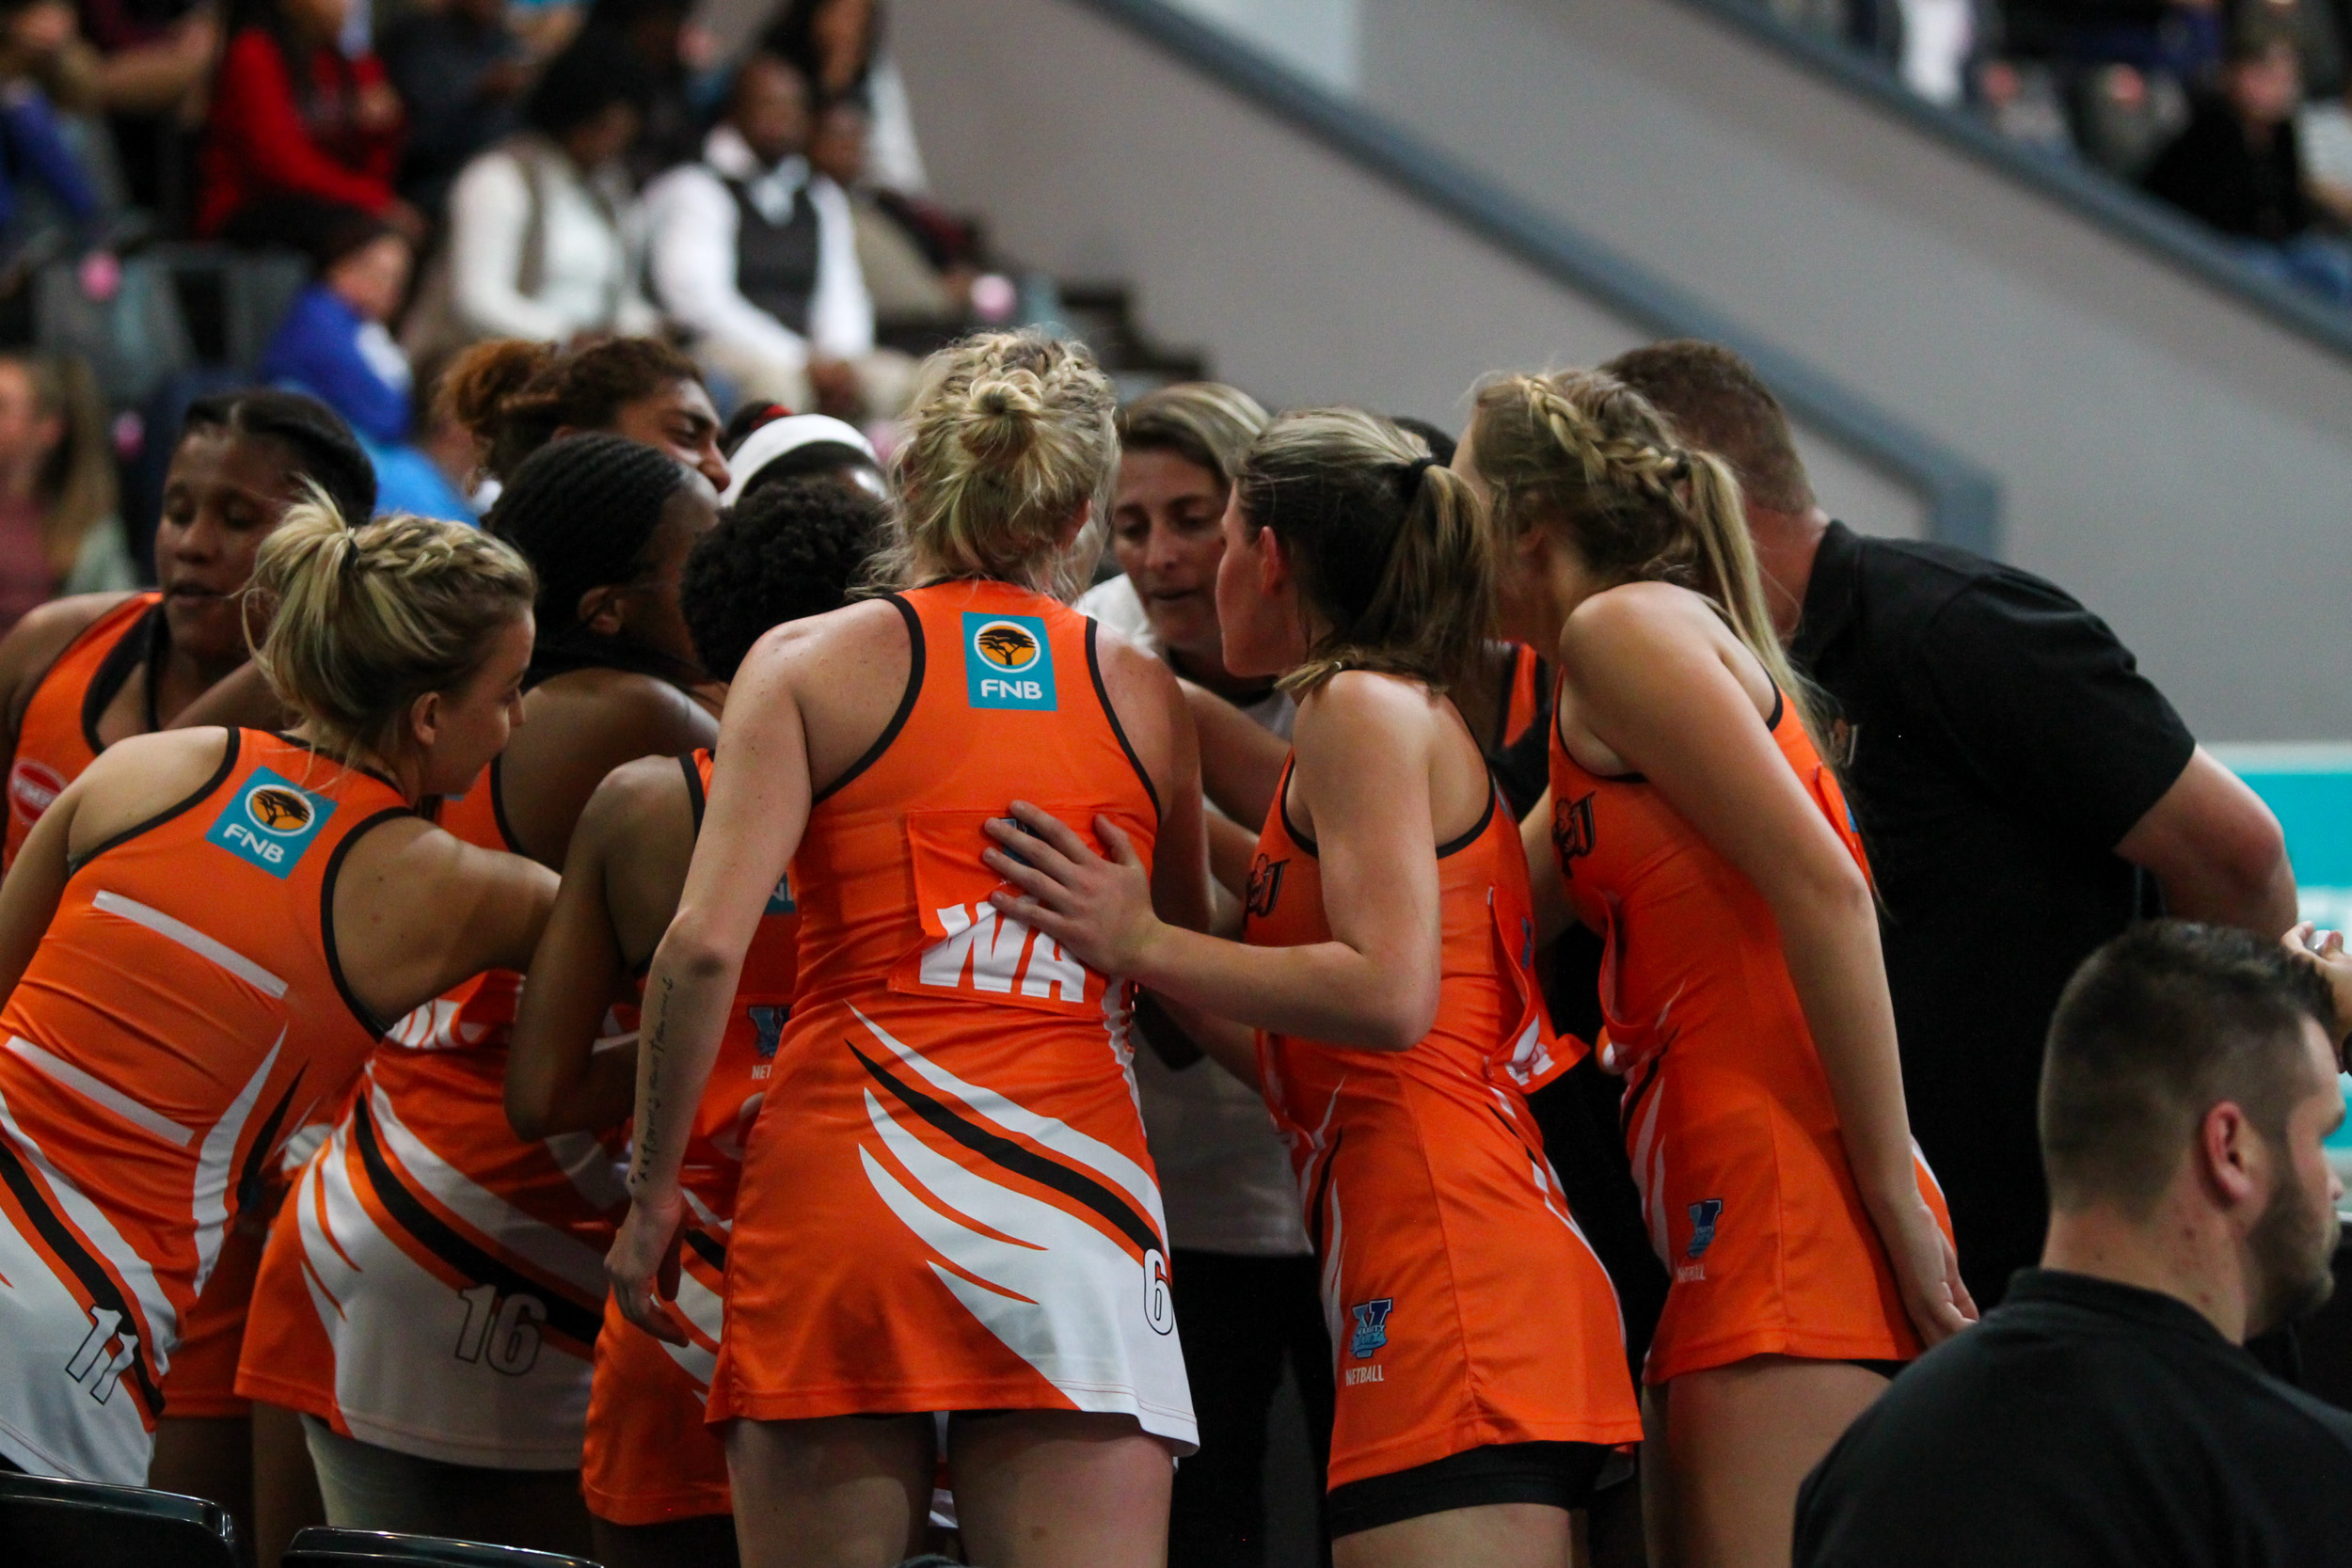 Battle of the sixes as UJ strive for first win